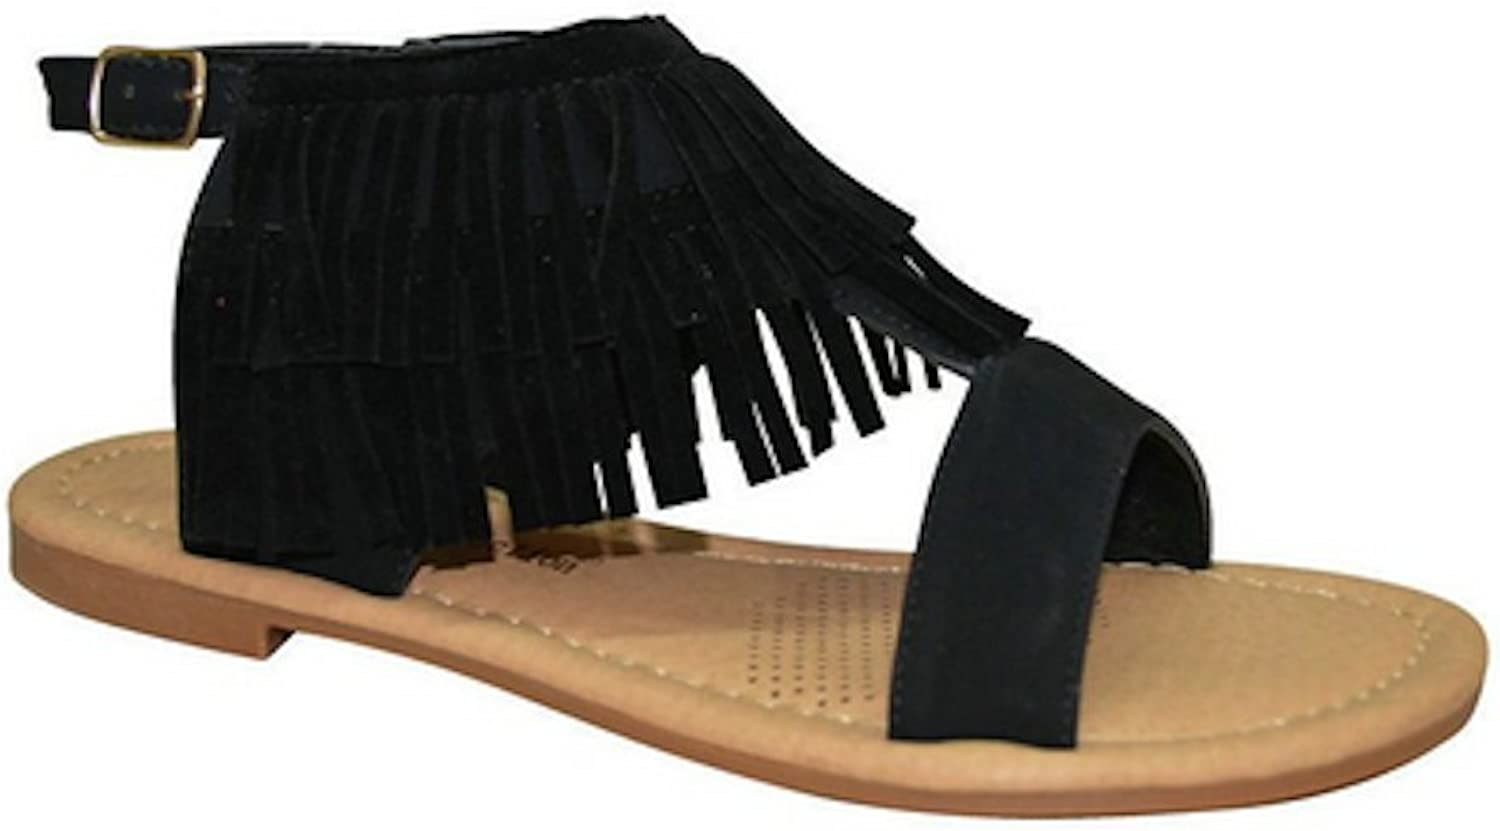 La Bella Fashion New Womens Strappy Buckle Fringe Moccasin Dress Sandals in Black, Nude